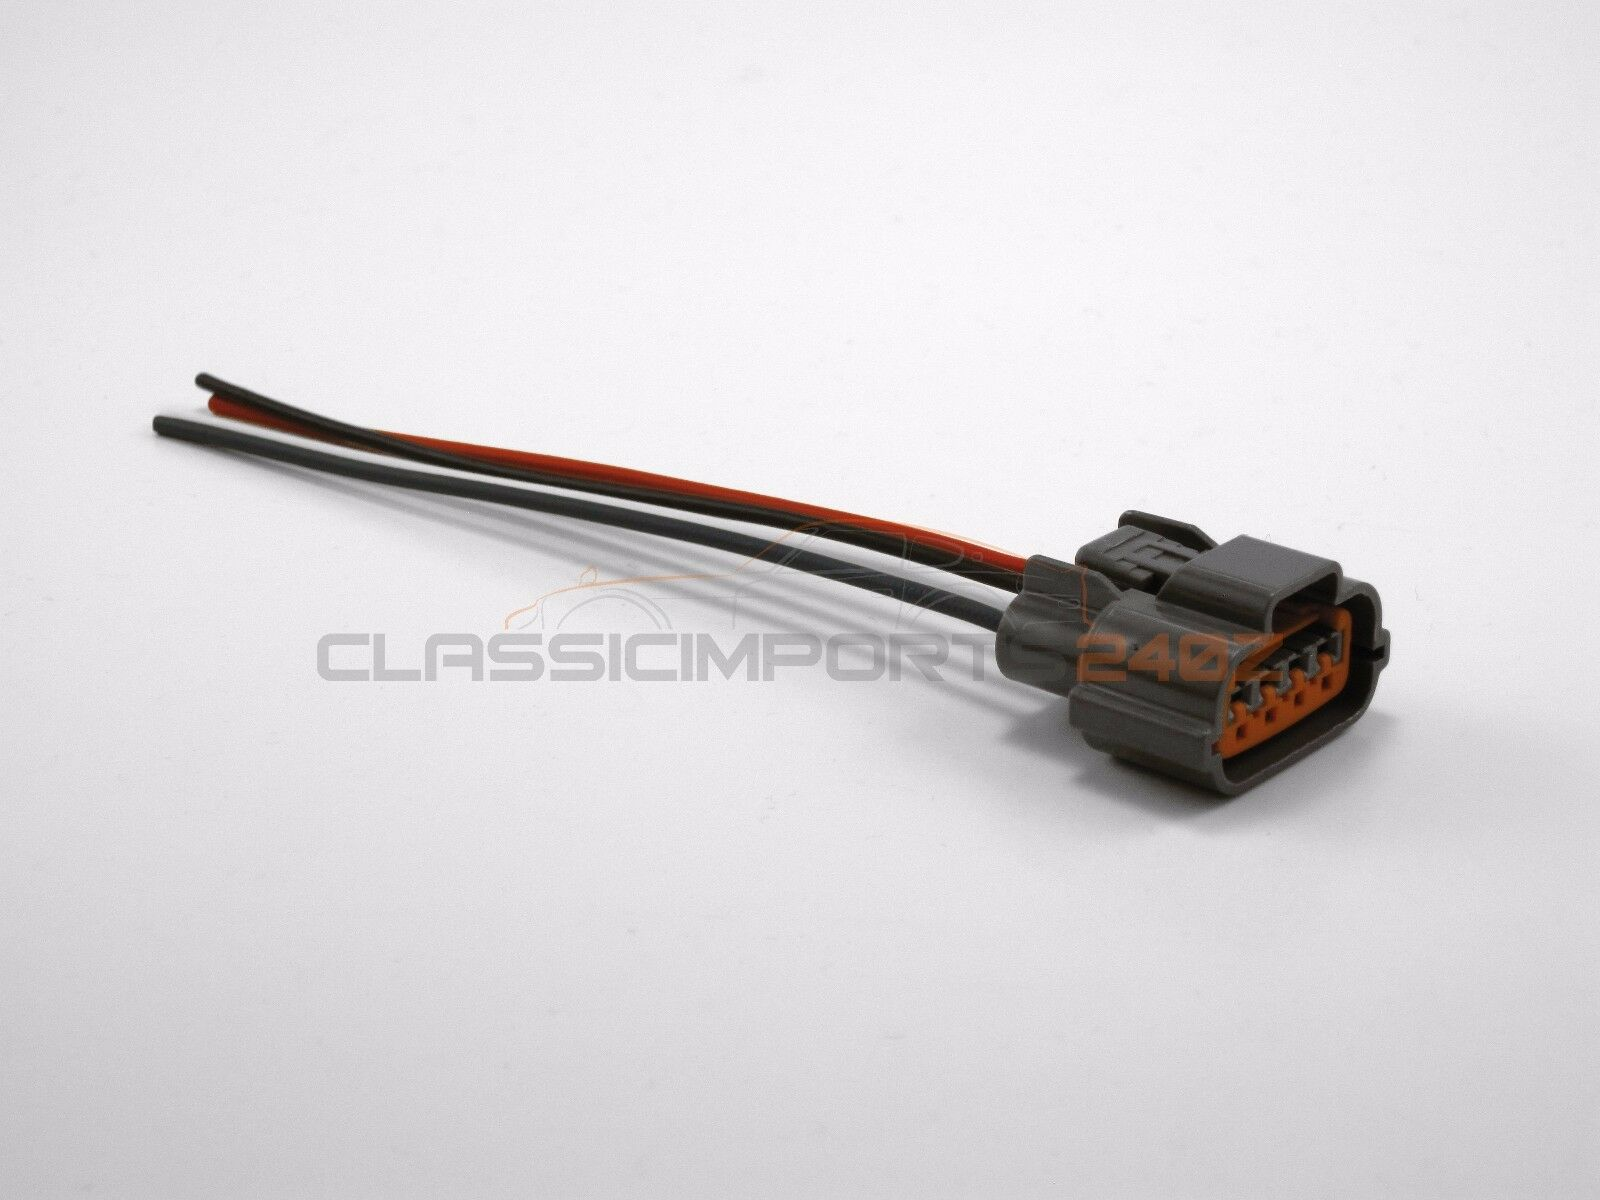 alternator harness connector plug for nissan maxima murano